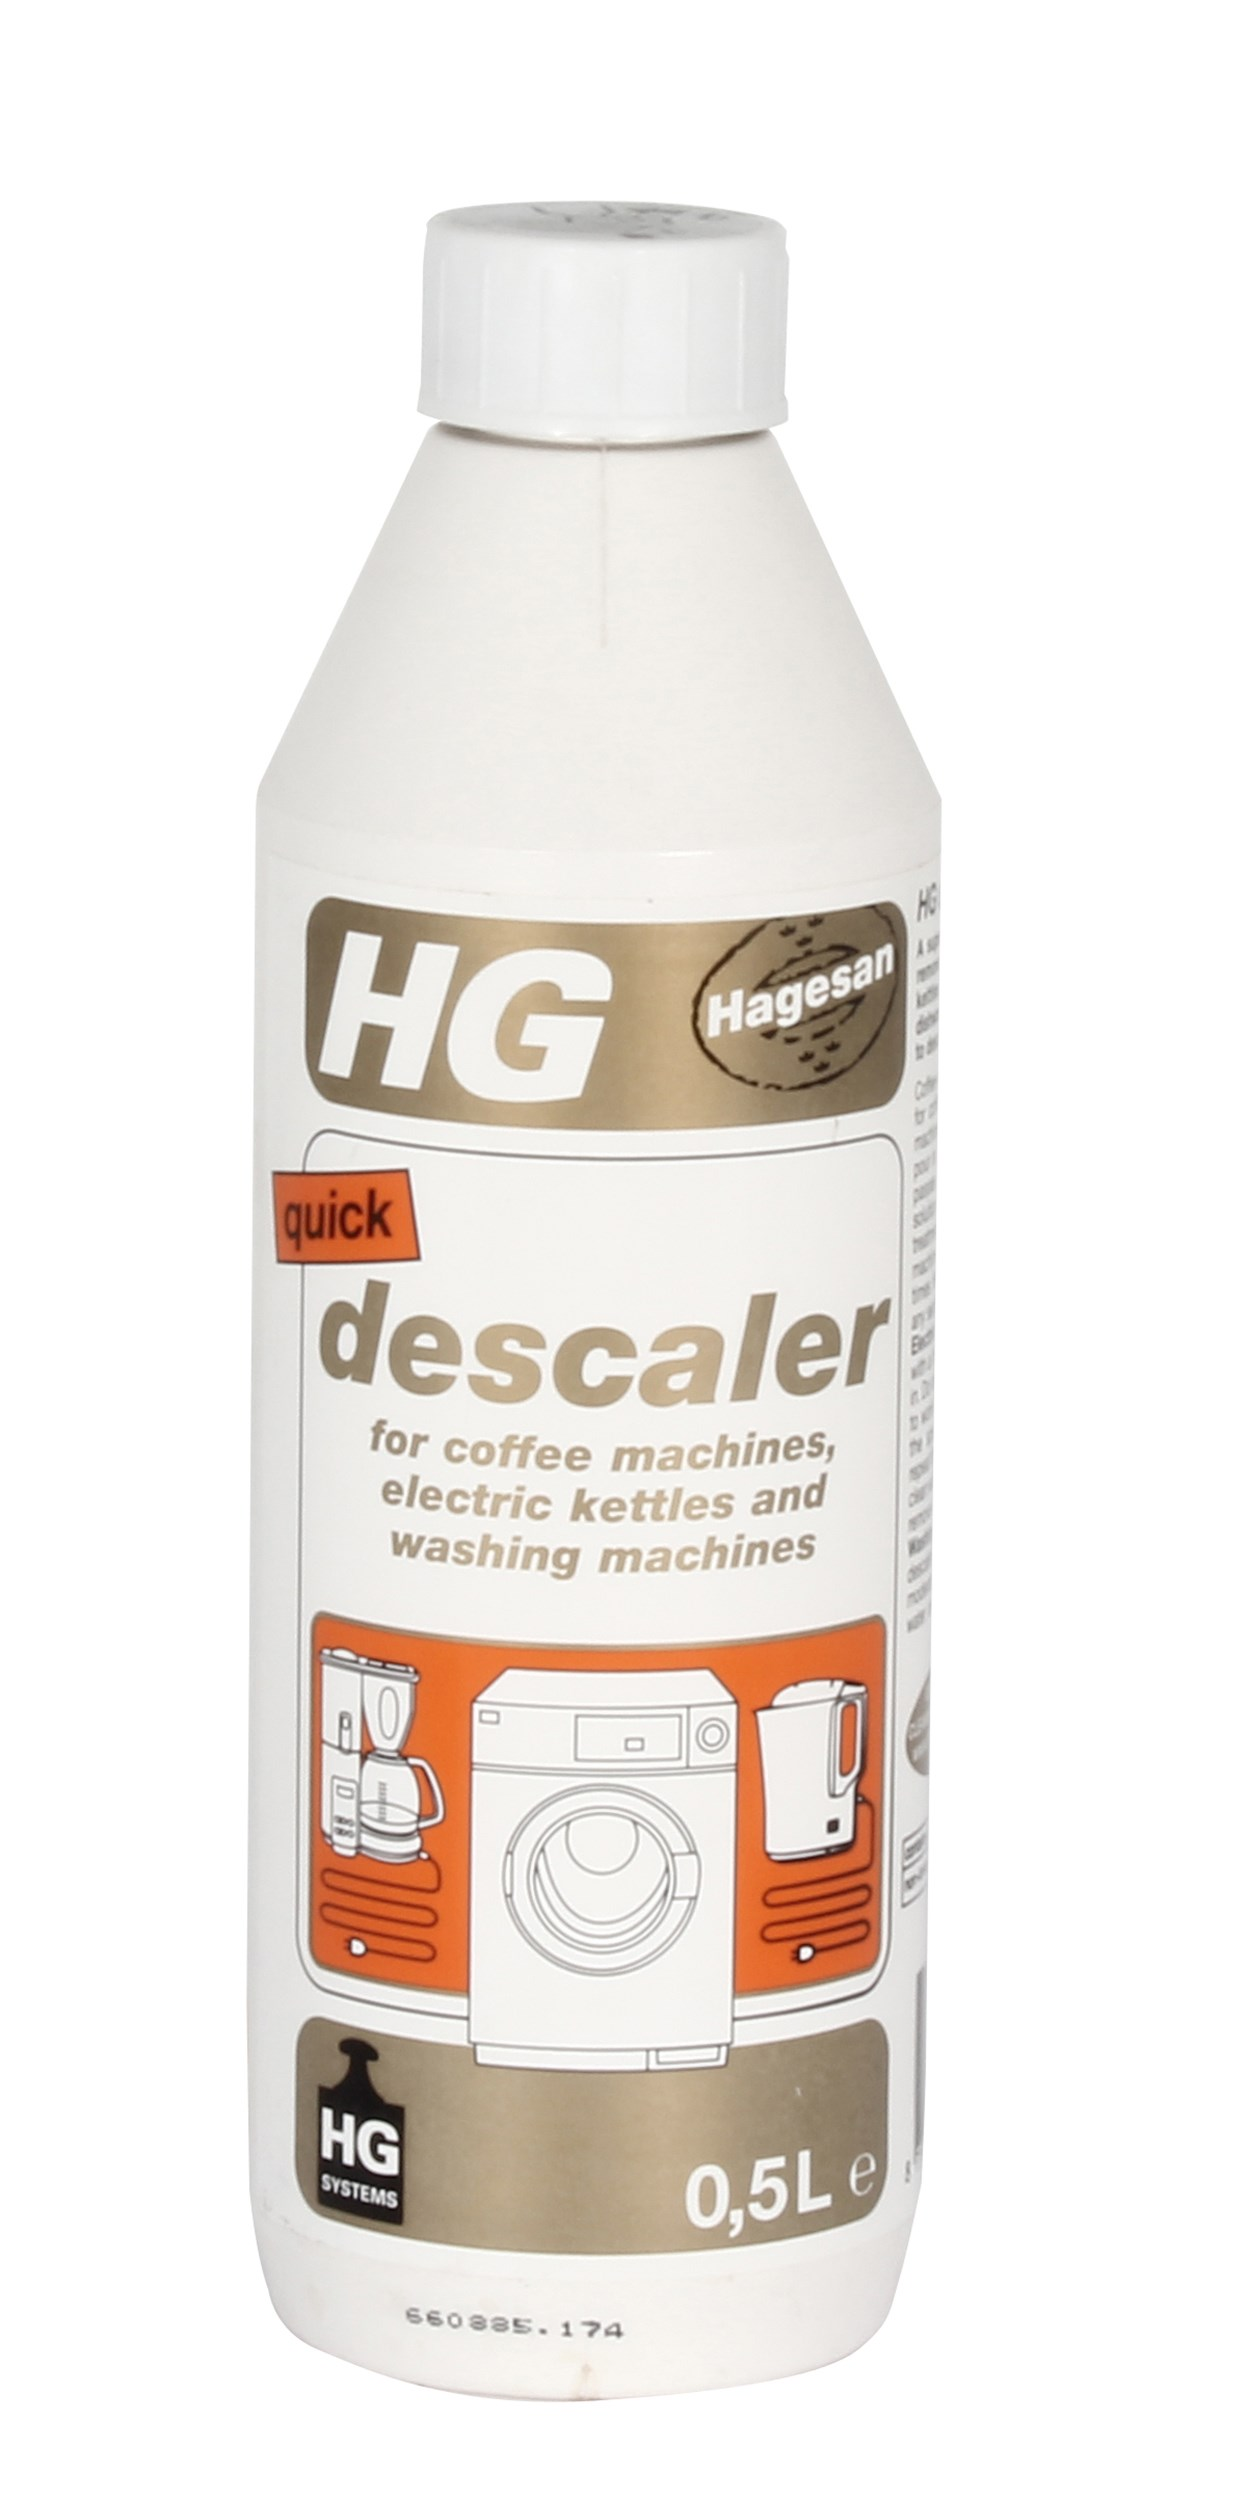 hg quick descaler 500ml home cleaning products. Black Bedroom Furniture Sets. Home Design Ideas